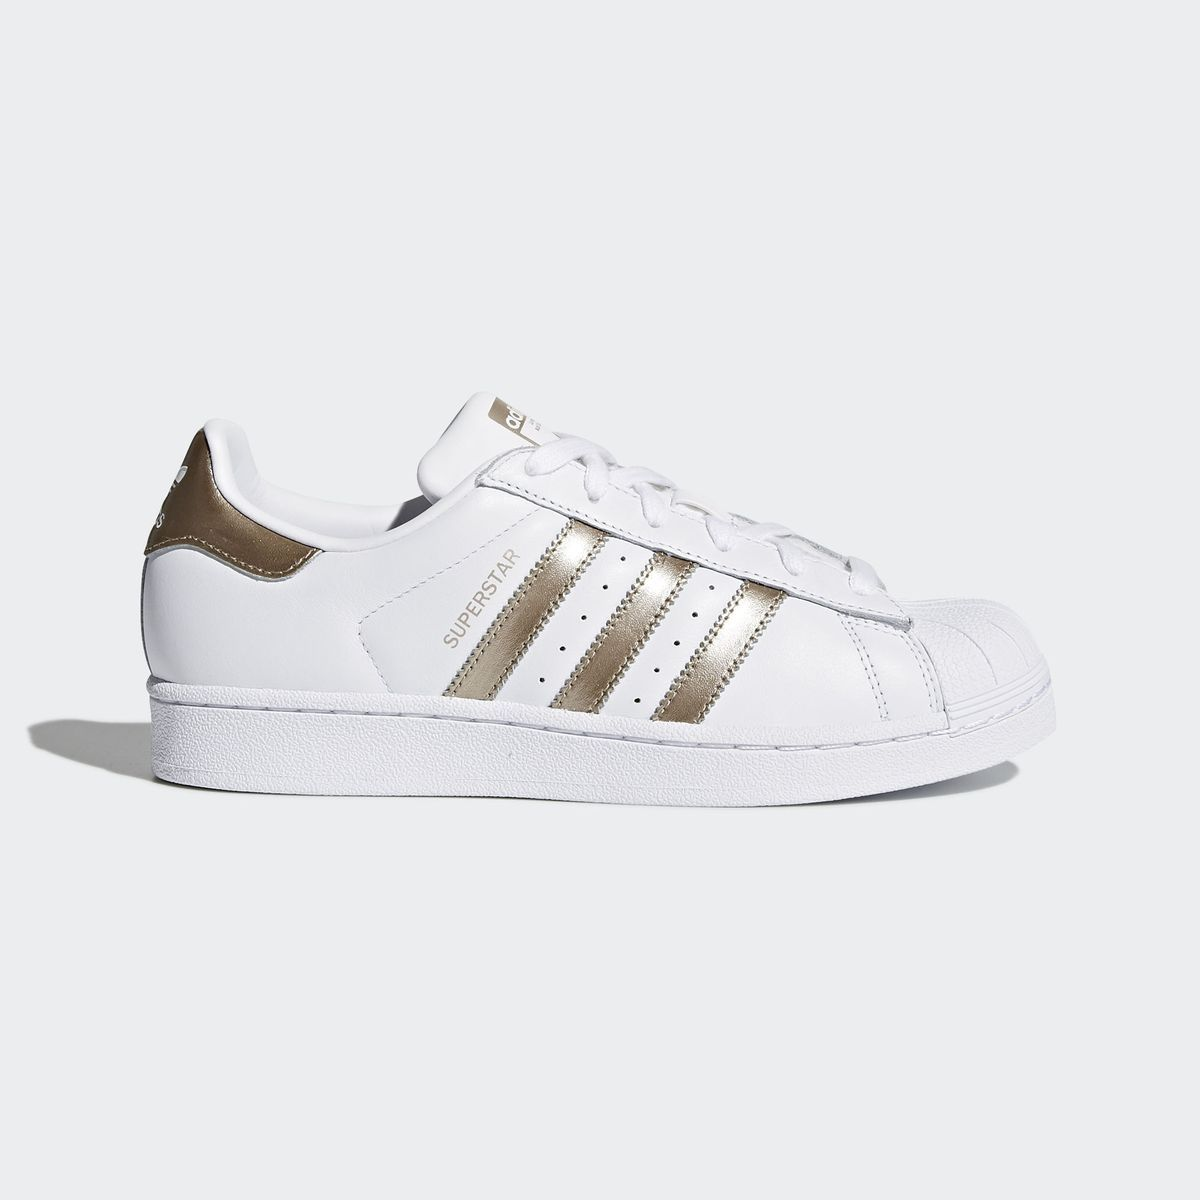 Baskets Superstar - Taille : 36 2/3 | Adidas superstar ...